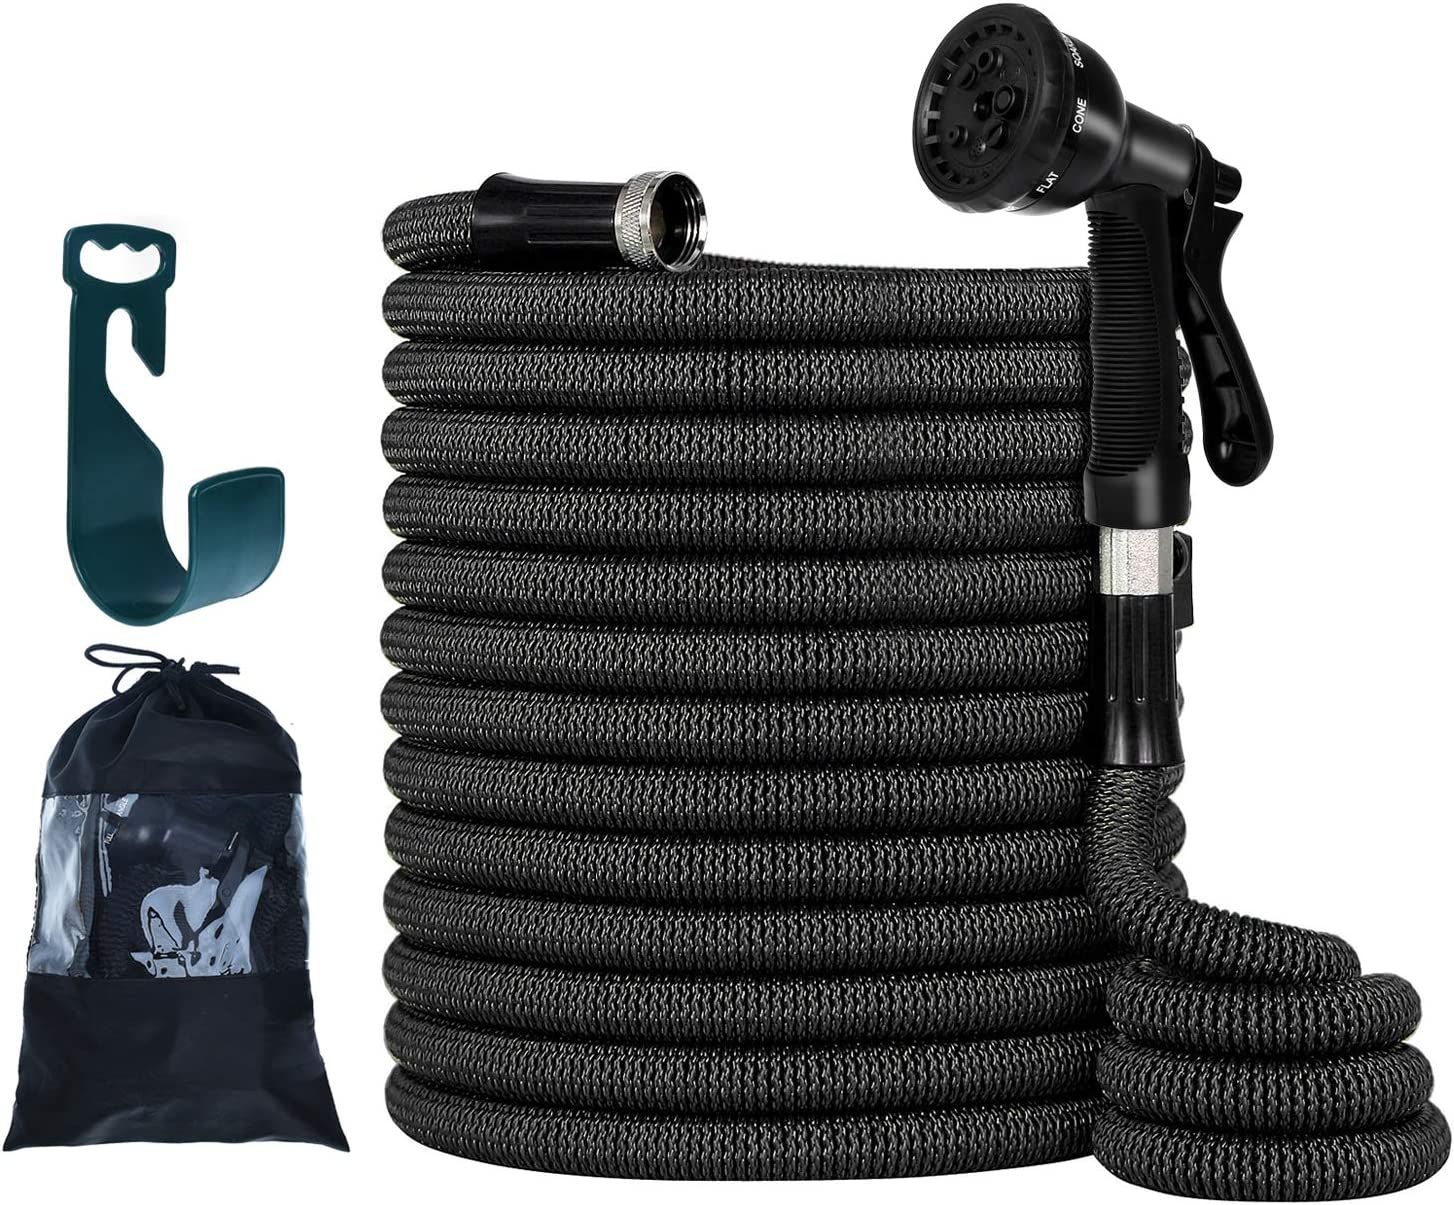 """PanShield Upgraded Heavy Duty 50FT Expandable Garden Hose Set, Double Latex Core, 3/4"""" Solid Brass Fittings, Lightweight Kink Free, Flexible Water Hose, 8 Function Spray Nozzle, Storage Bag, Hanger"""